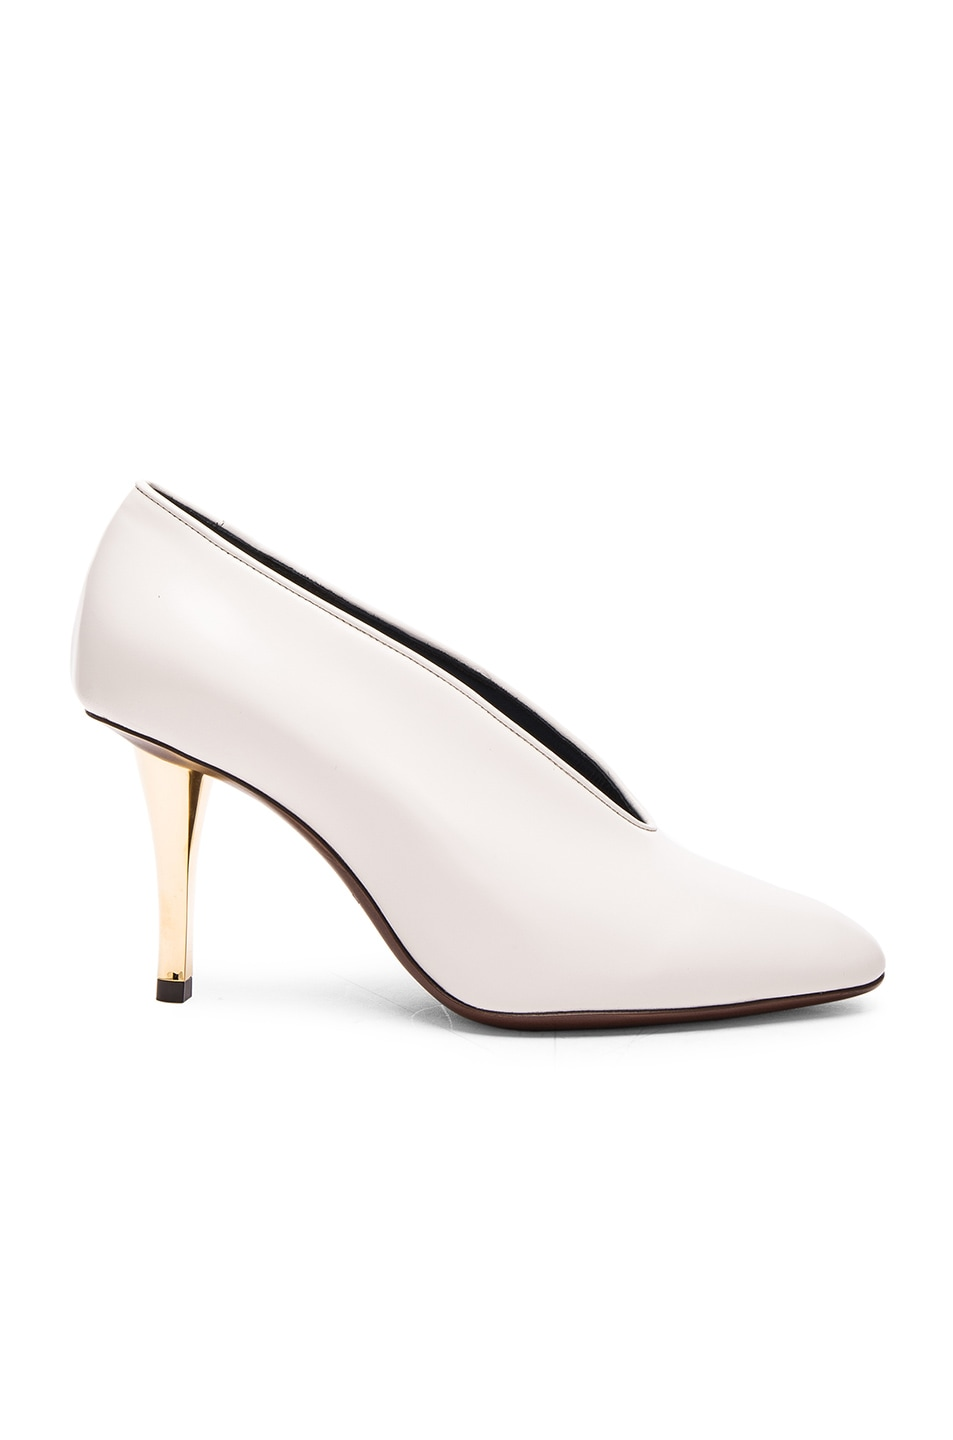 pay with visa online authentic cheap price Lanvin Leather Pump gT5yoaME1M